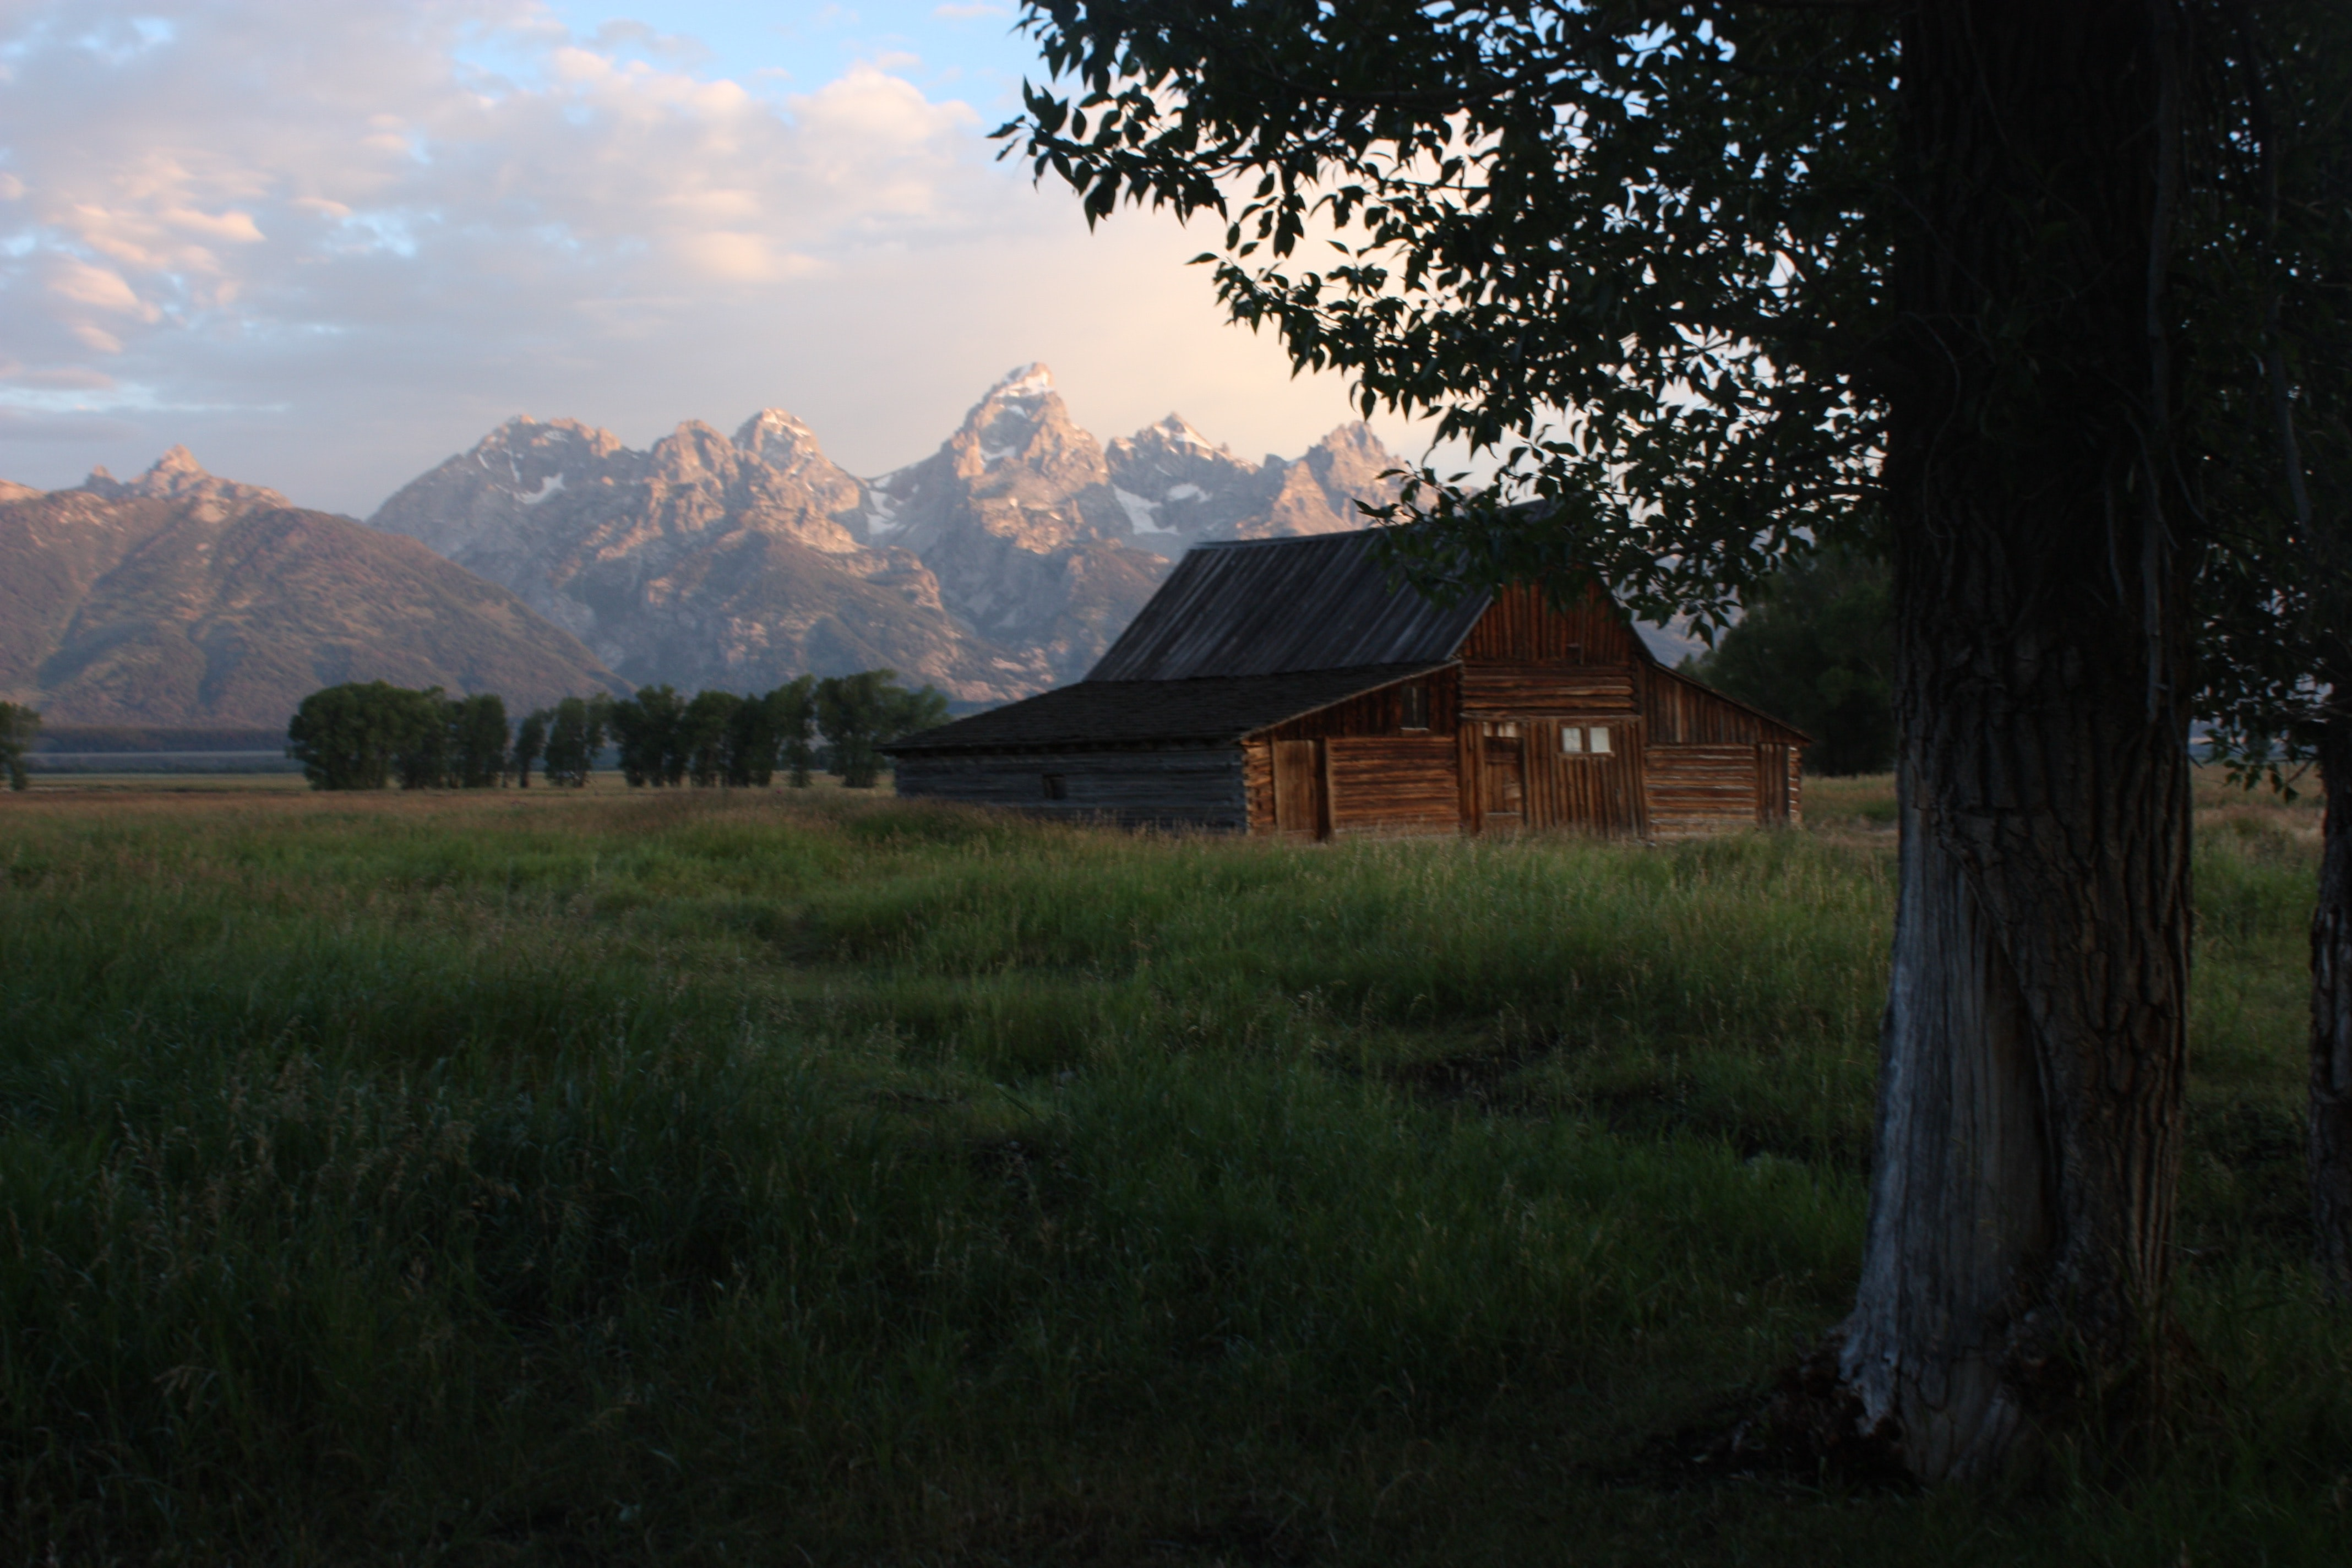 Rustic cabin in a green field with a large tree in the foreground and spiked mountains in the background